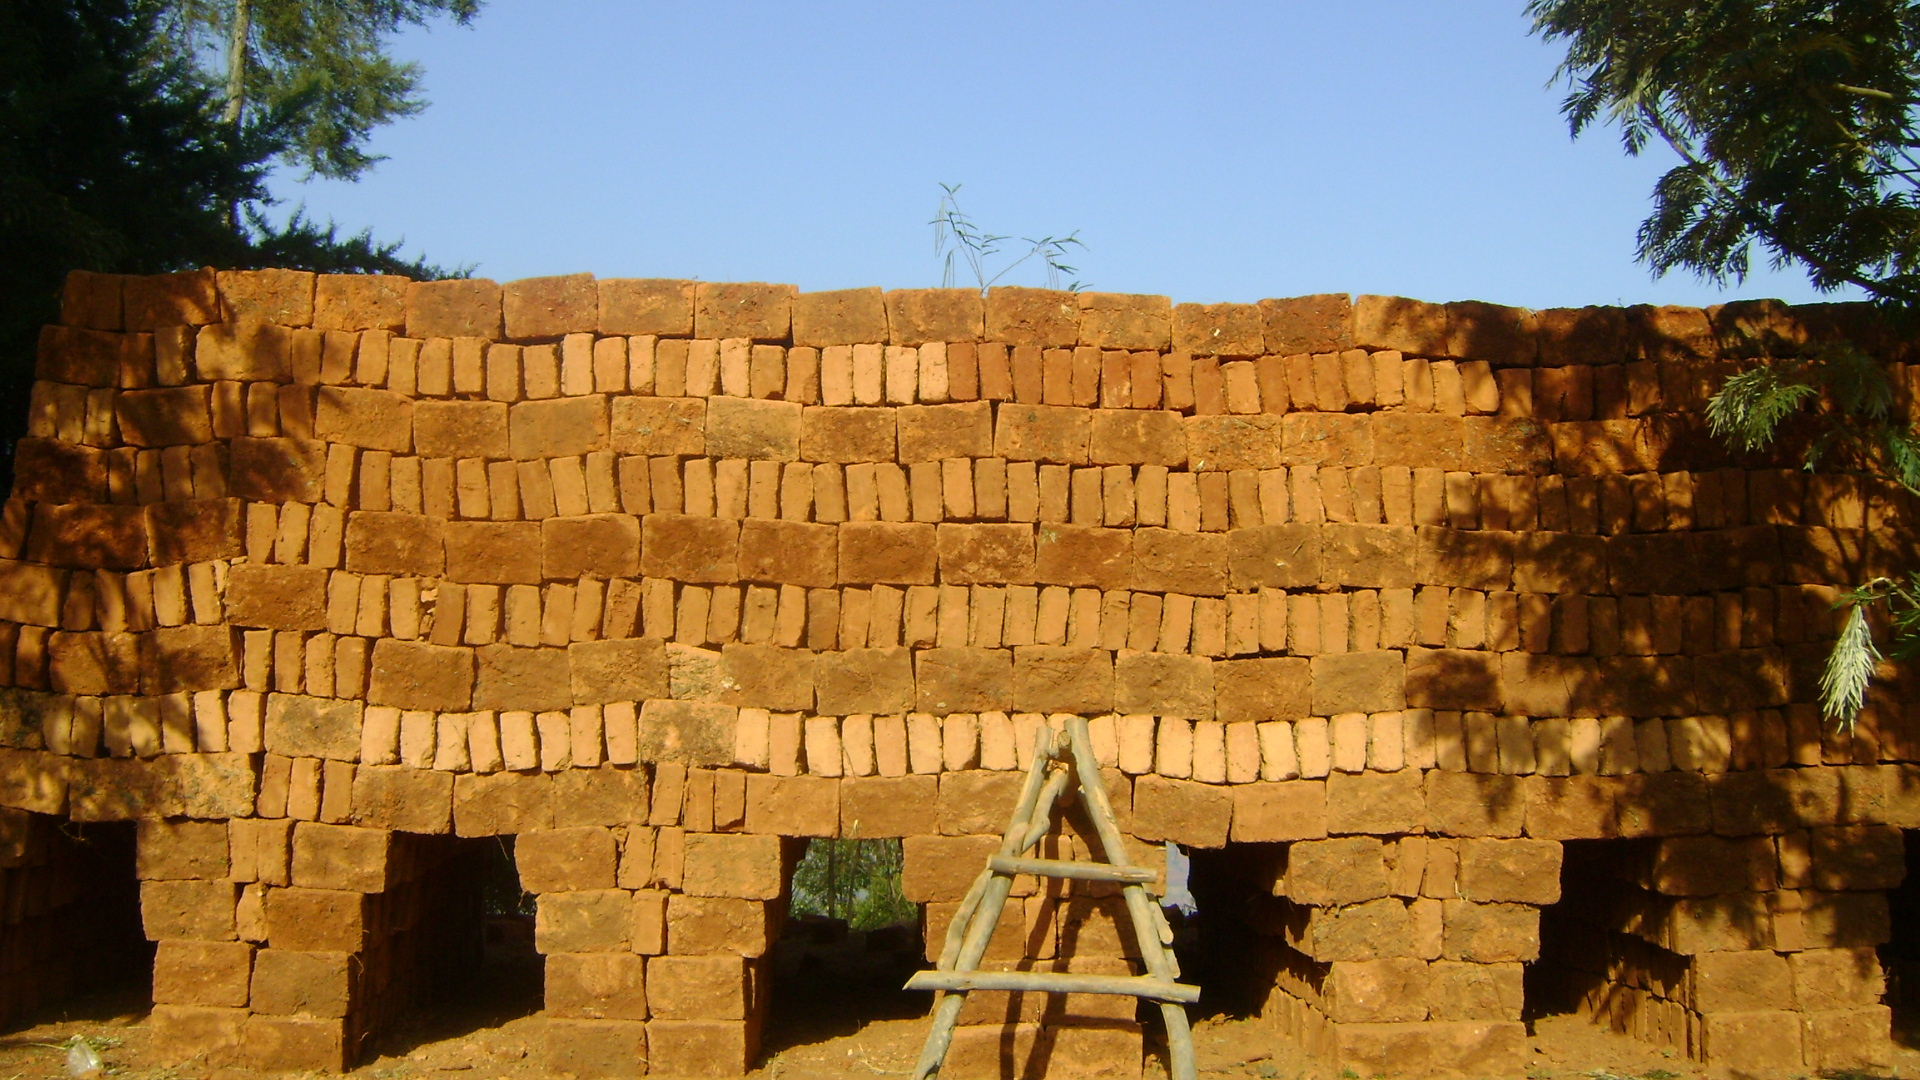 32 - The bricks were used to build the kiln